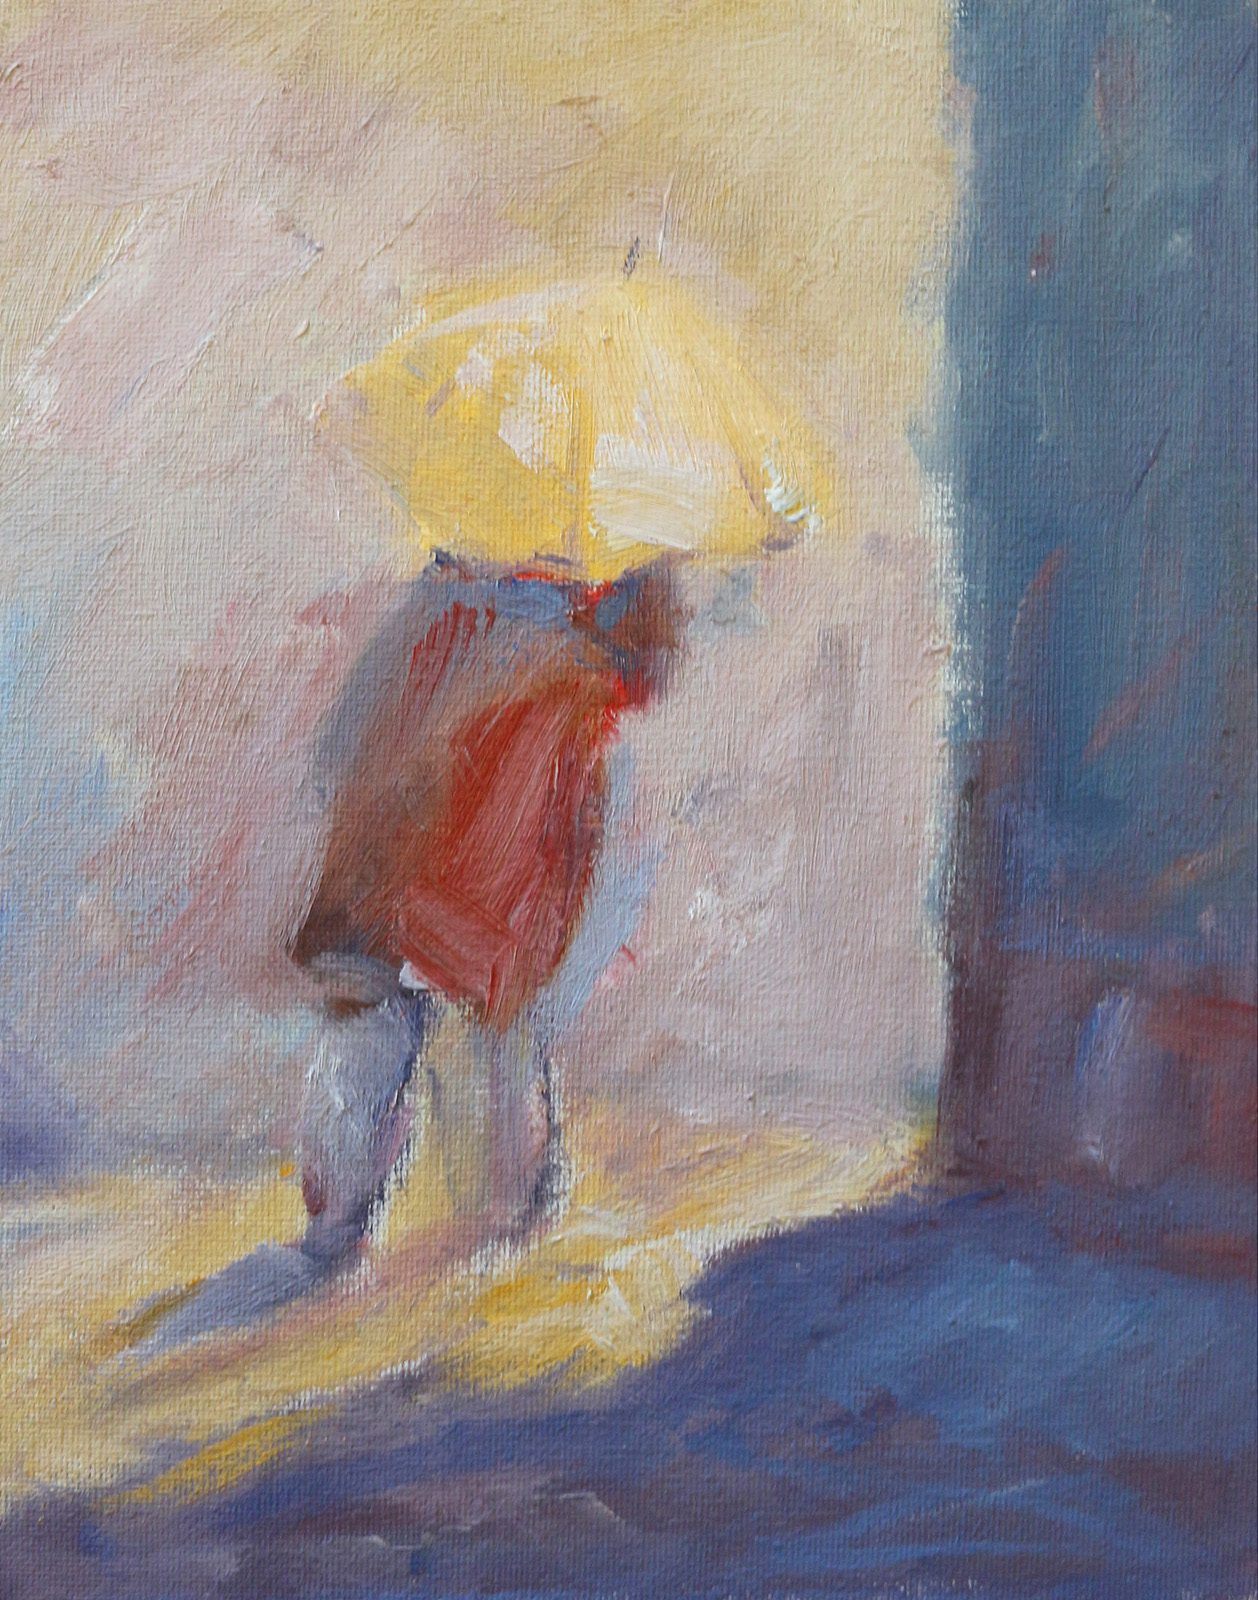 Colourful study of figure with parasol in oils by Stewart Taylor